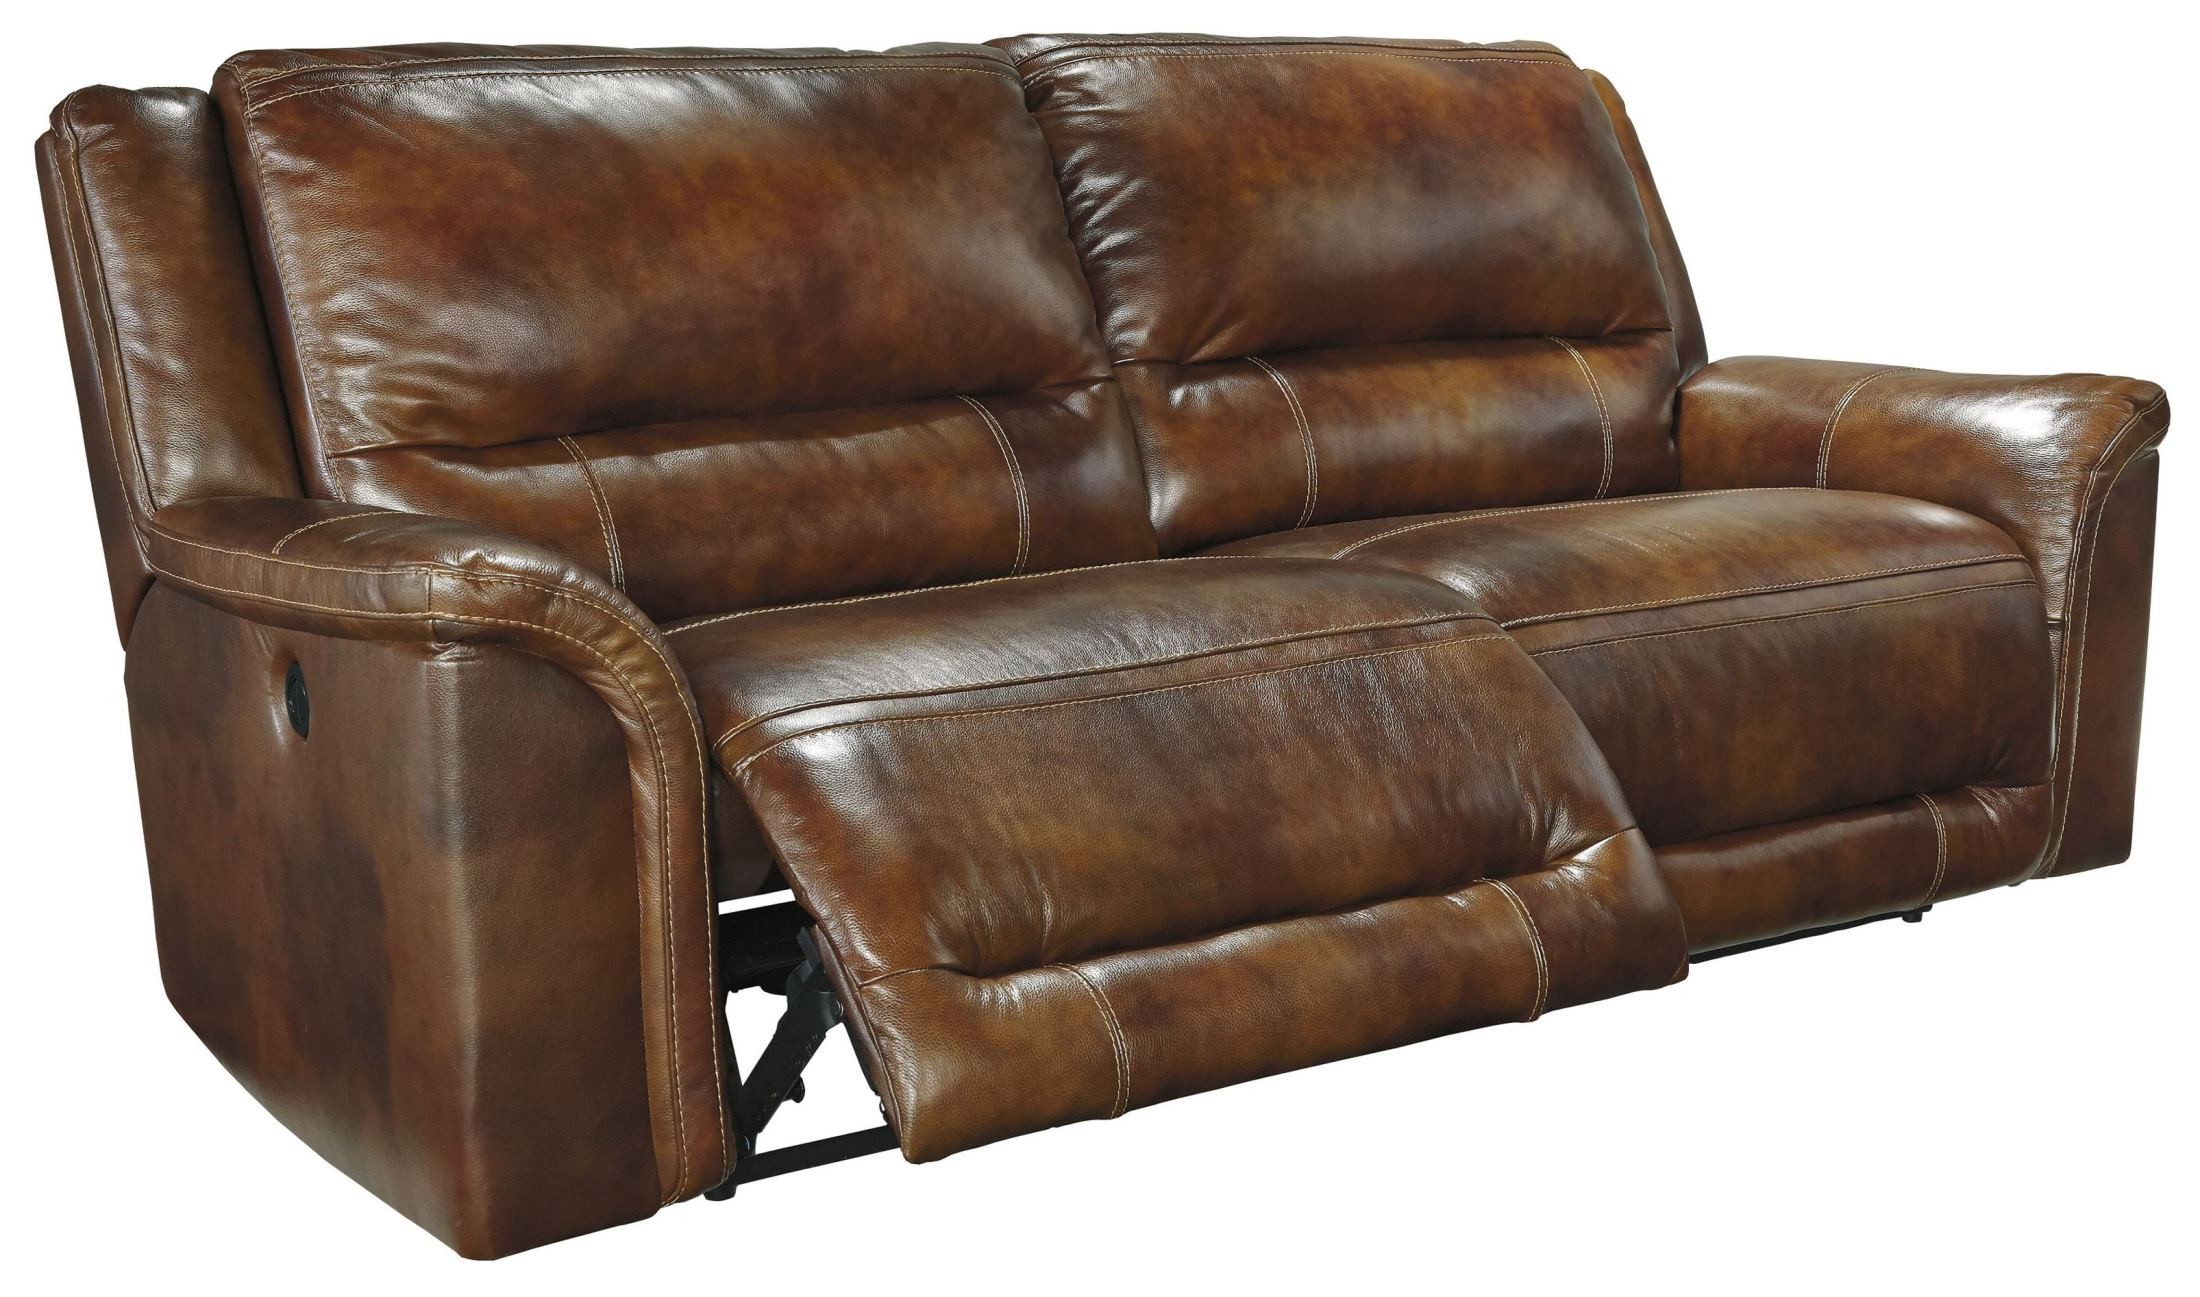 Jayron Harness 2 Seat Power Reclining Sofa From Ashley